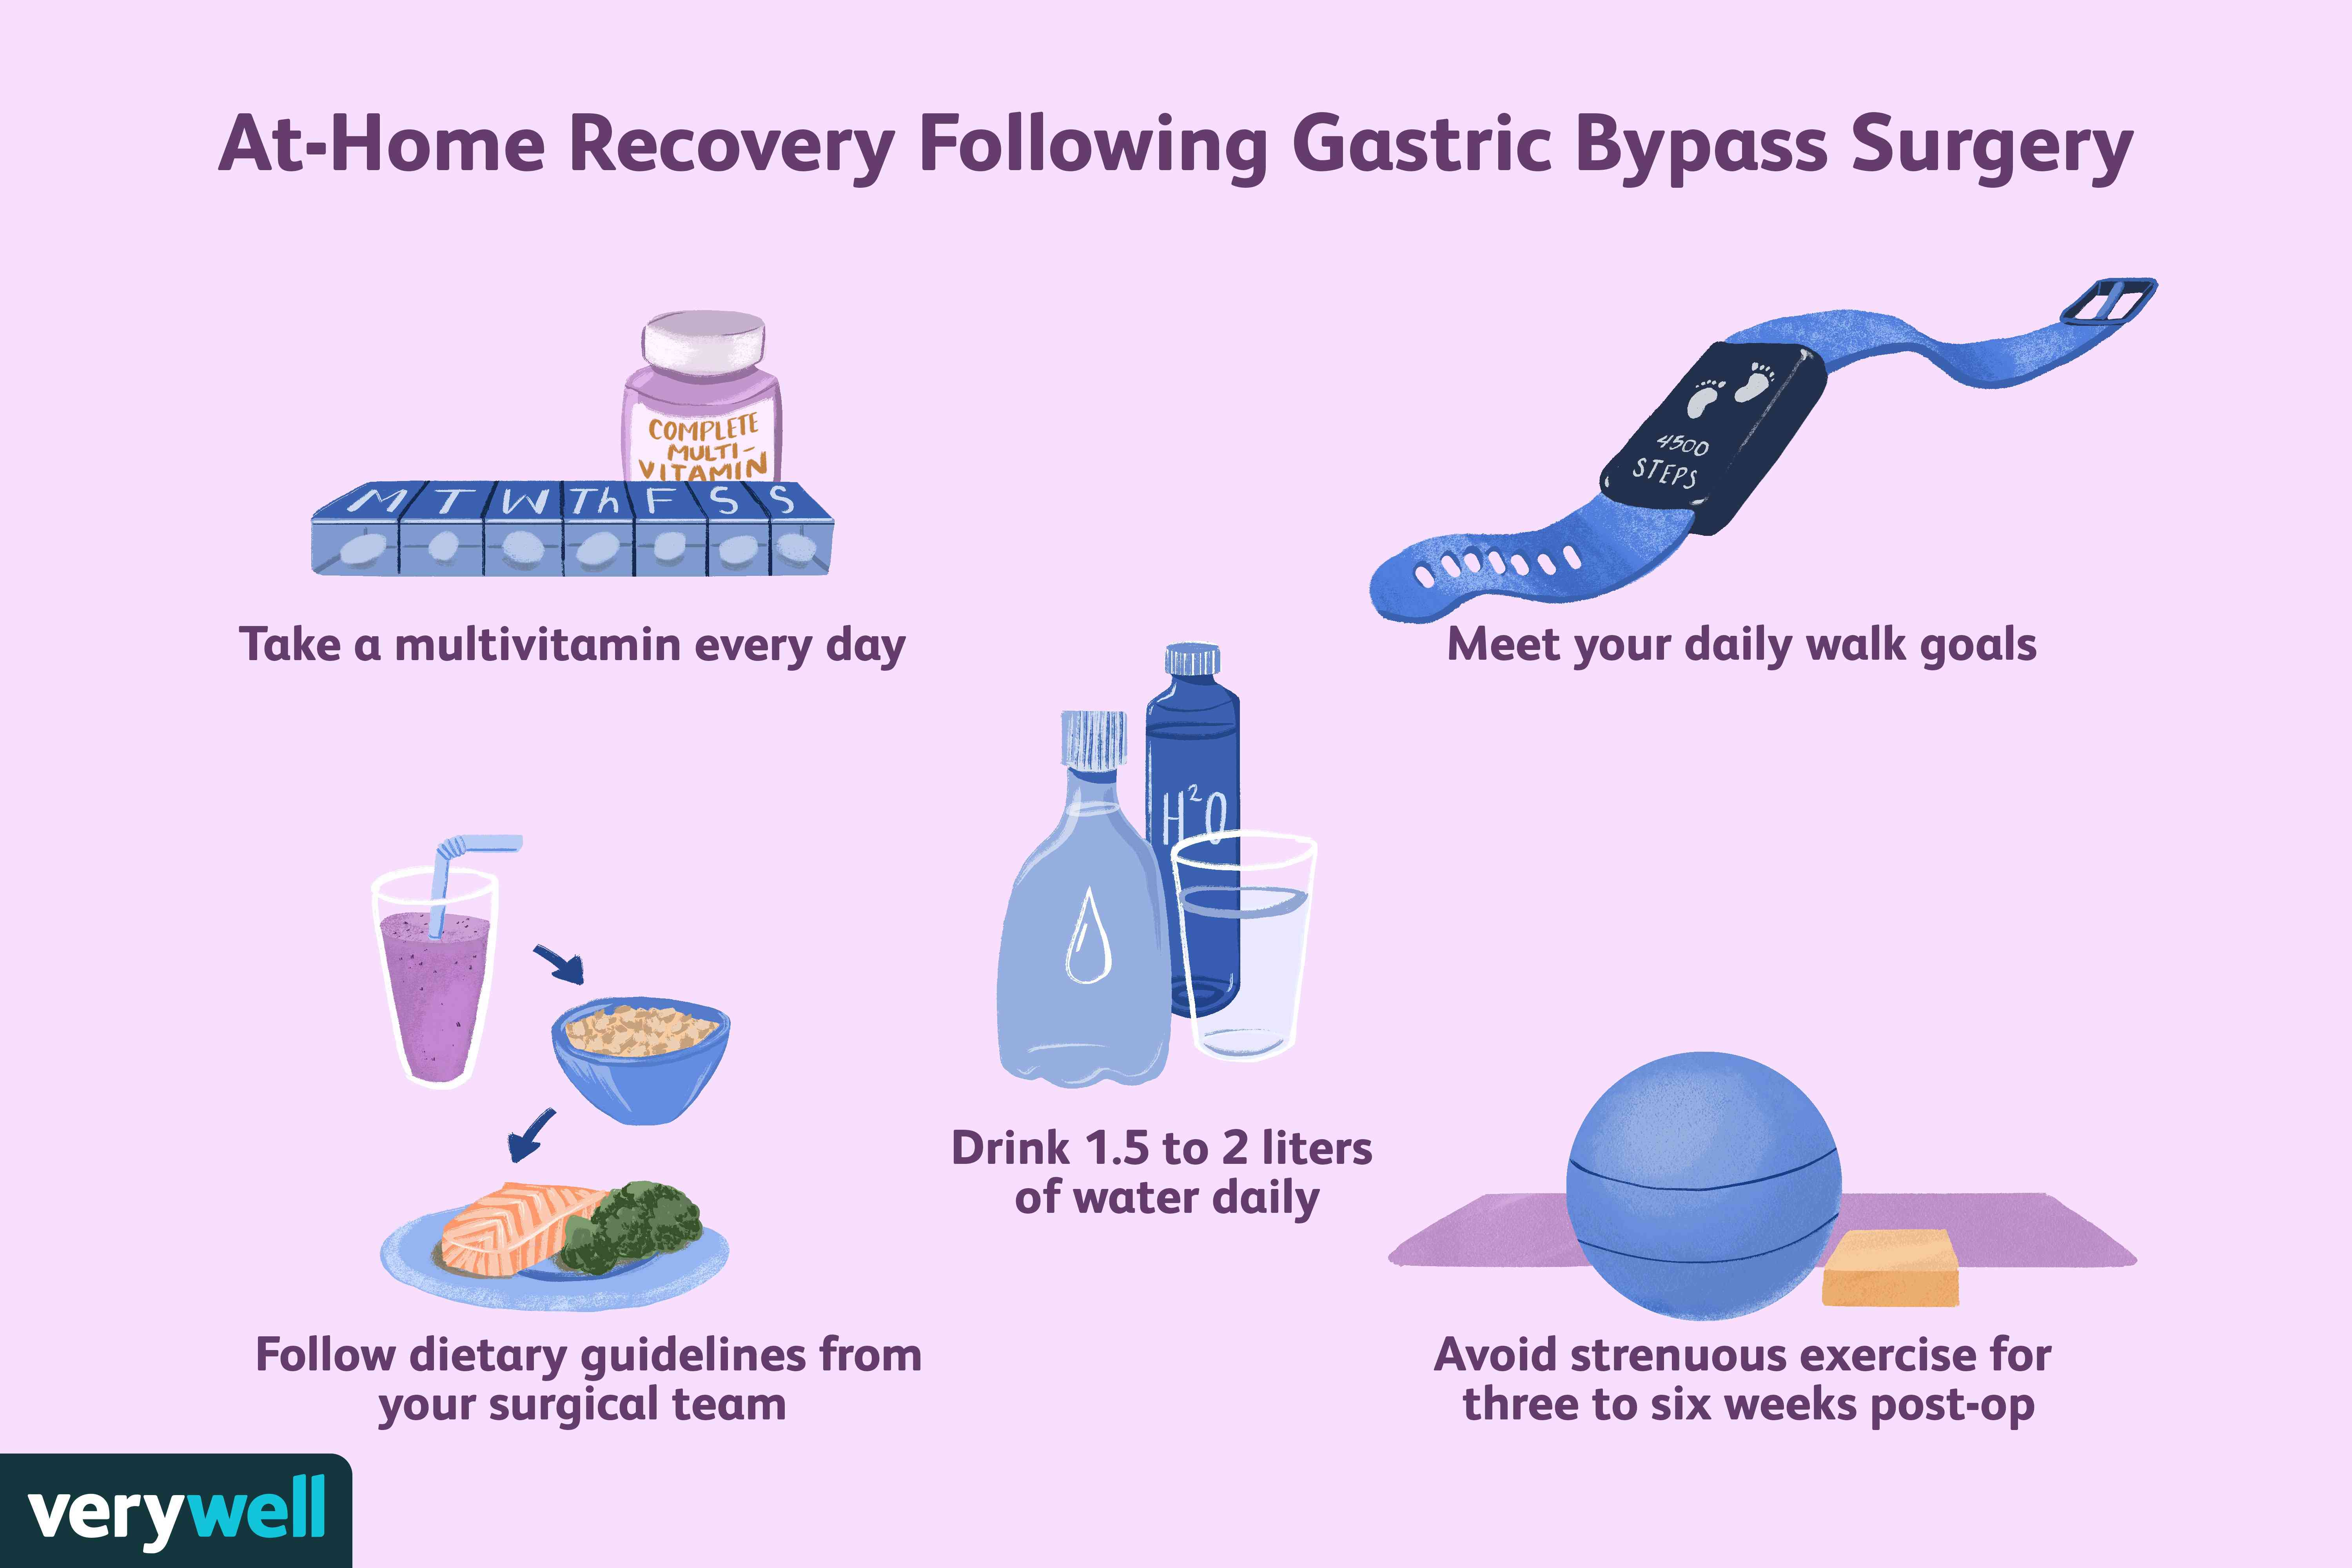 At-Home Recovery Following Gastric Bypass Surgery